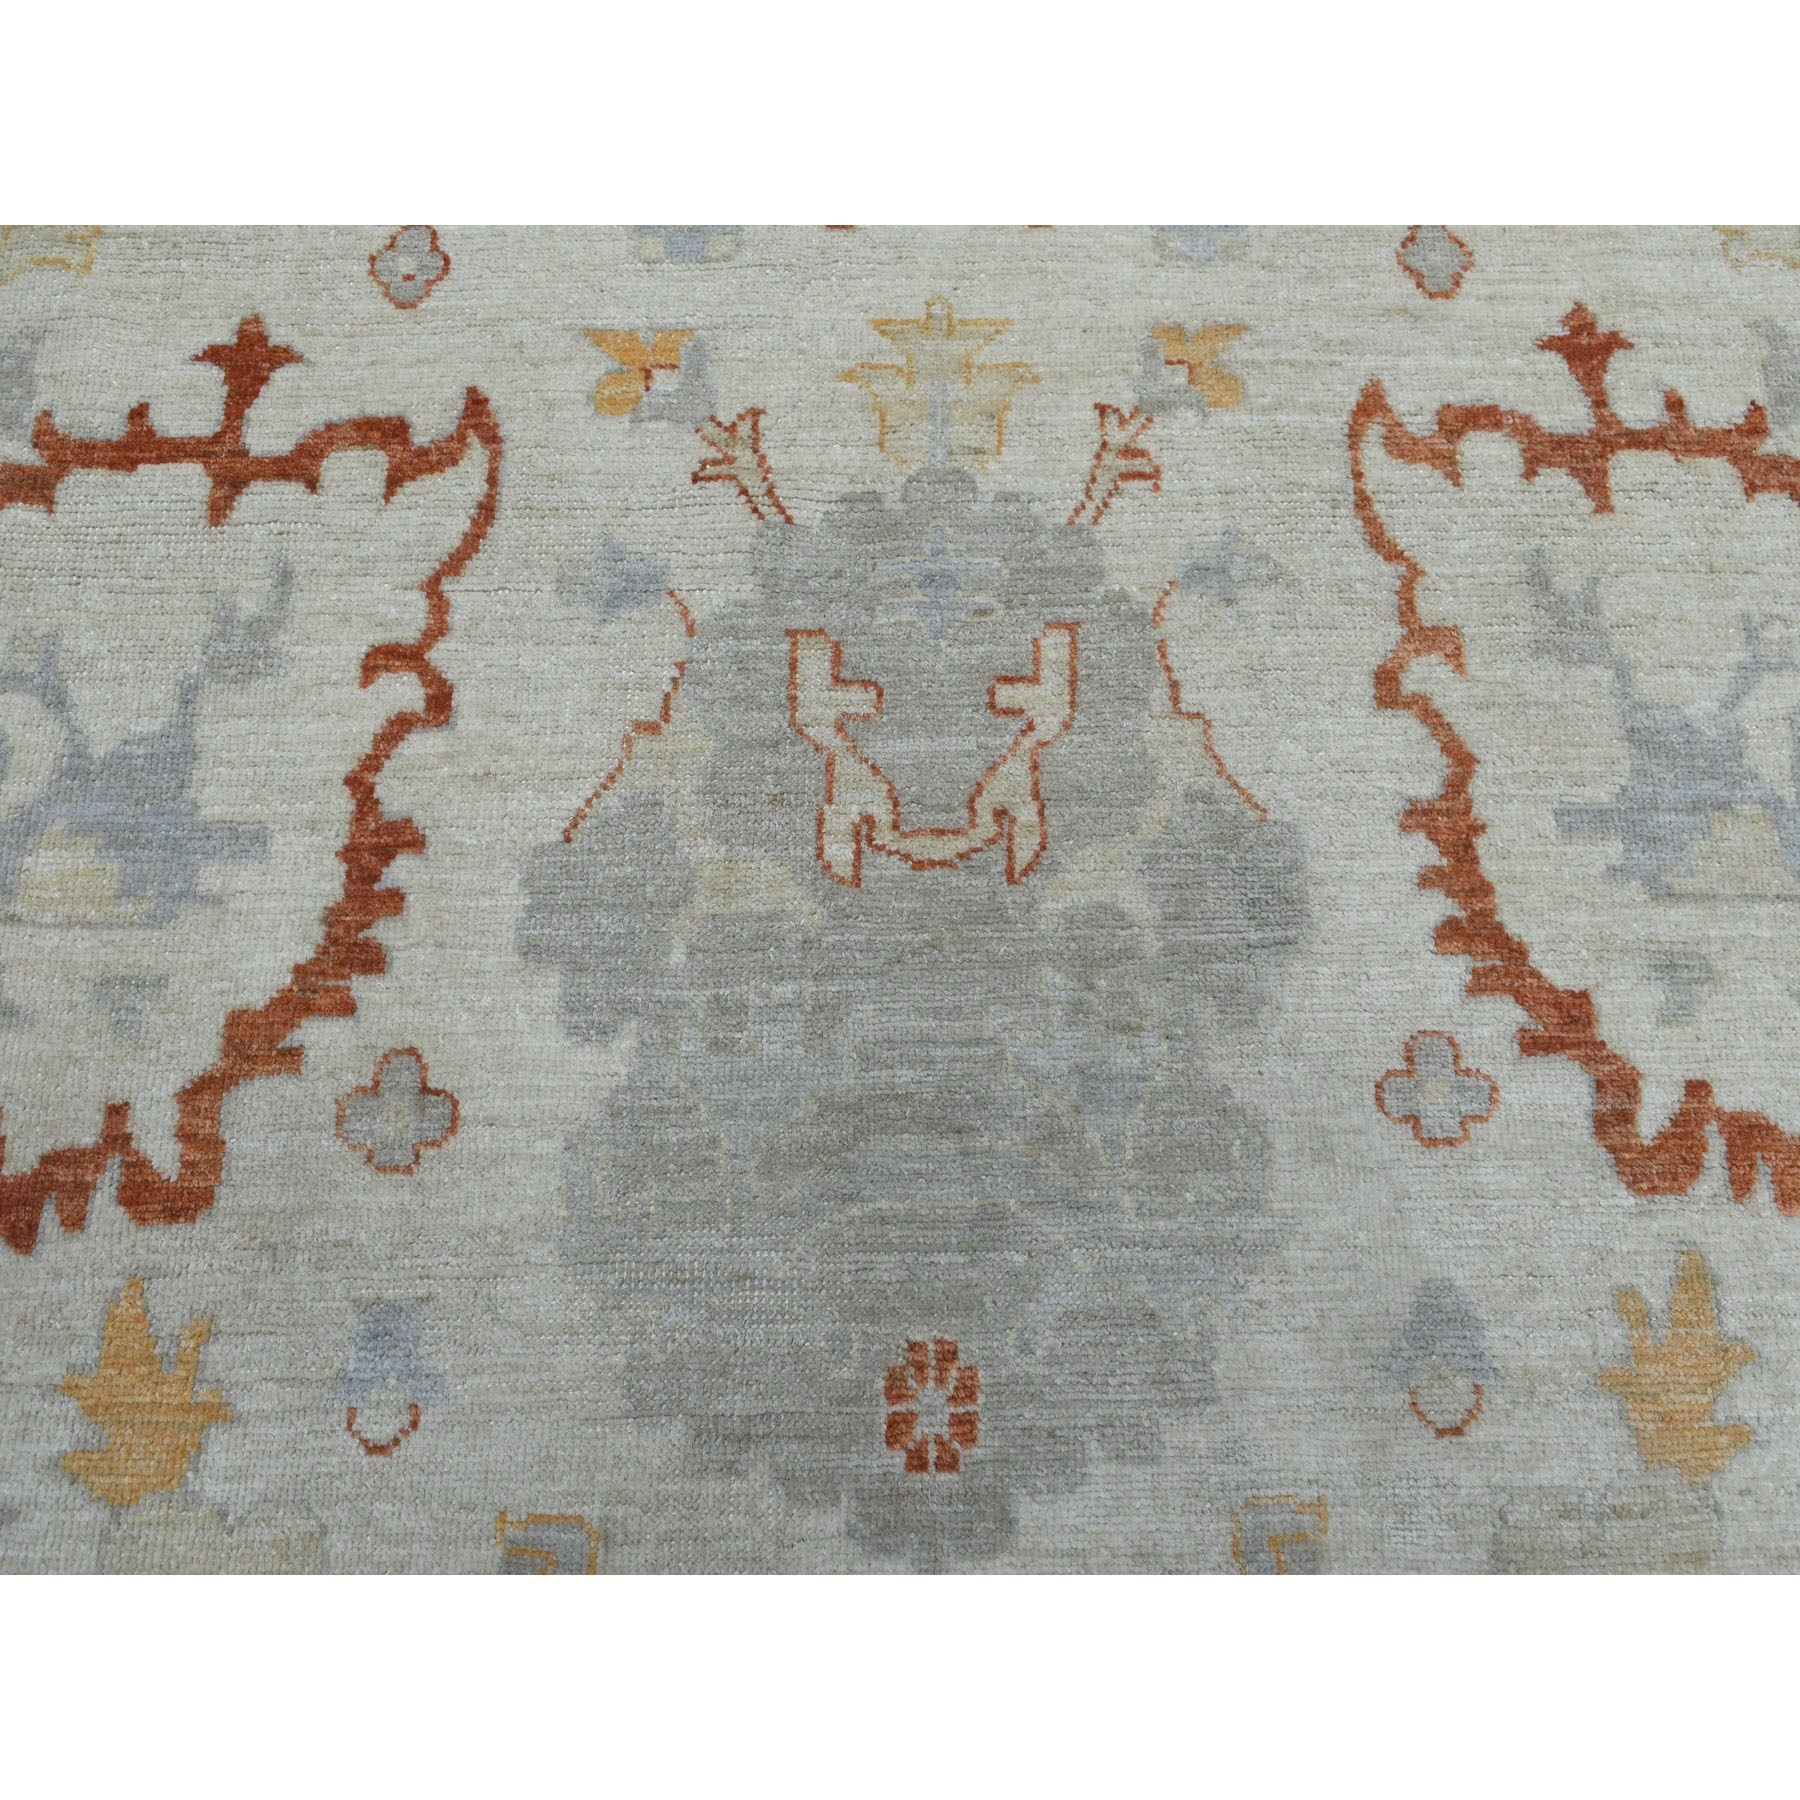 10-1 x13-8  Ivory Angora Oushak Pure Wool Hand Knotted Oriental Rug